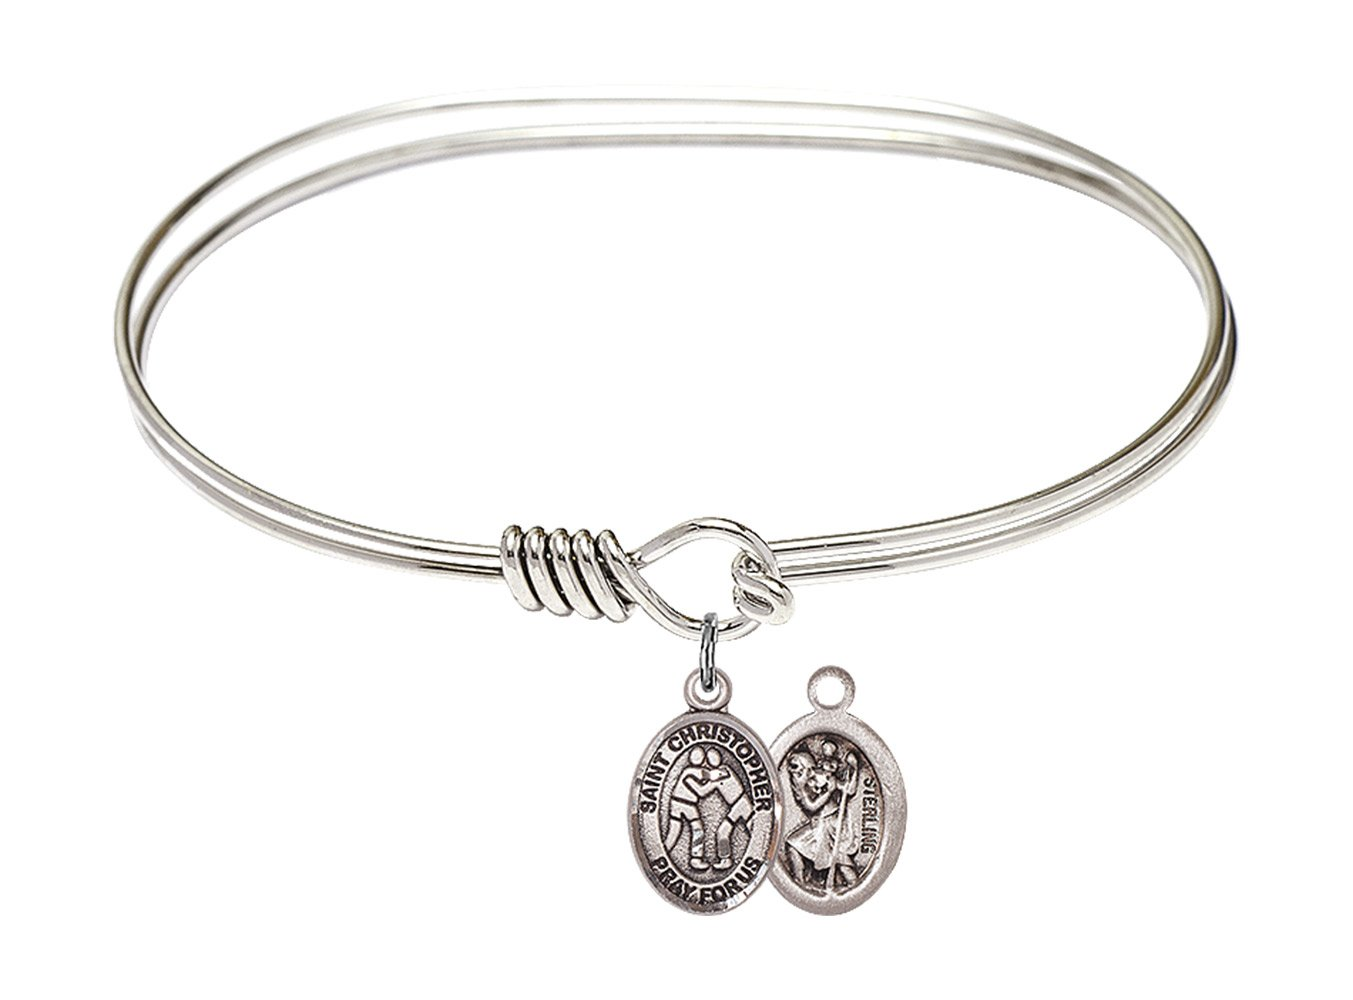 7 inch Oval Eye Hook Bangle Bracelet with a St. Christopher/Wrestling charm.